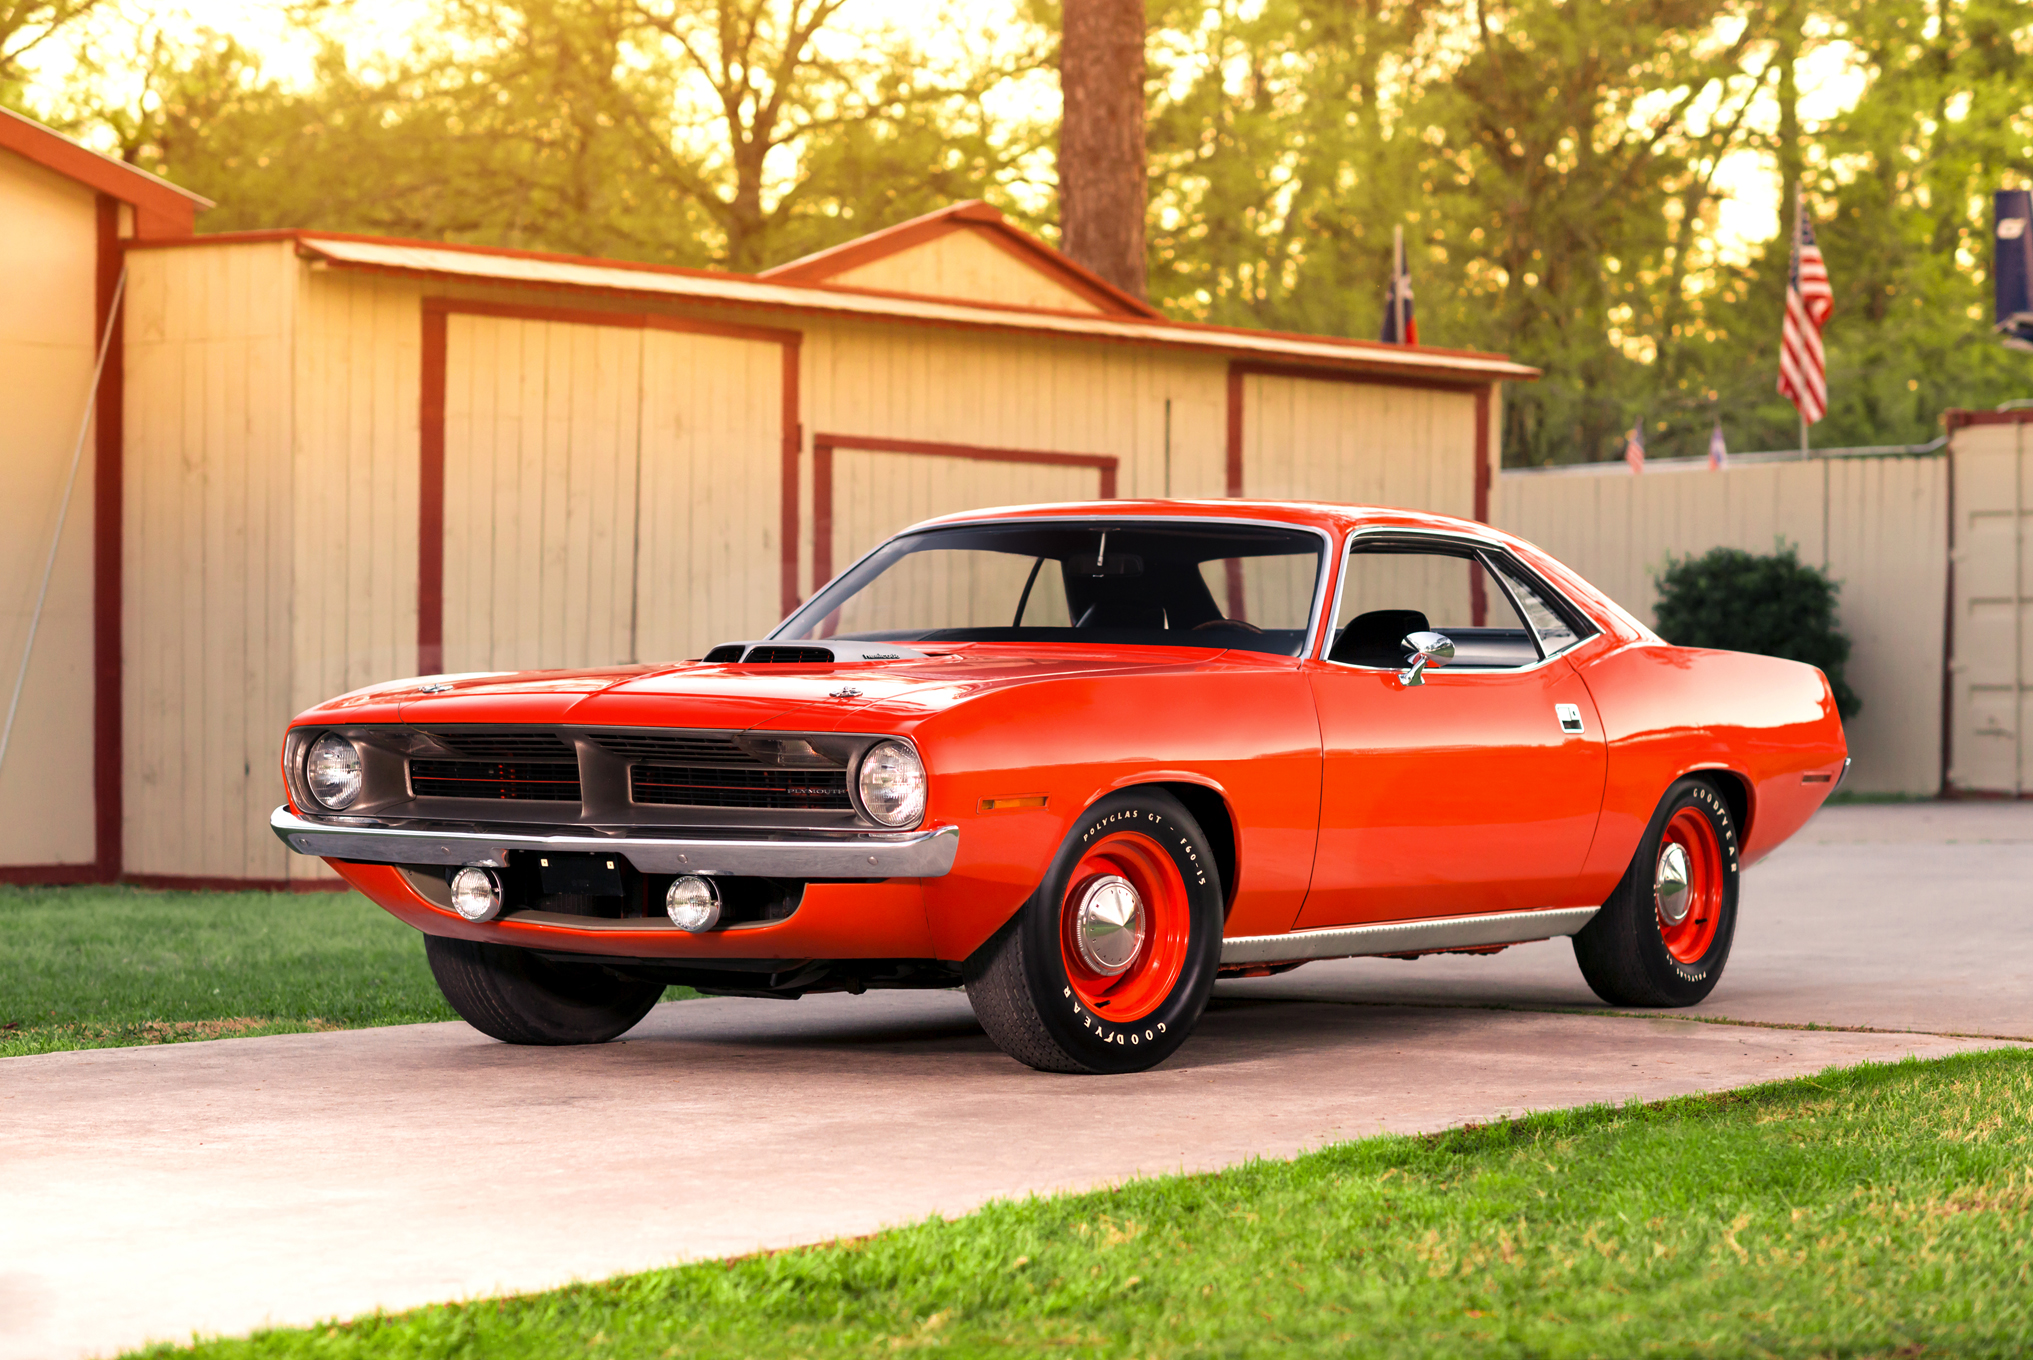 1970 Plymouth Hemi Cuda With Just 81 Original Miles Heading to Auction